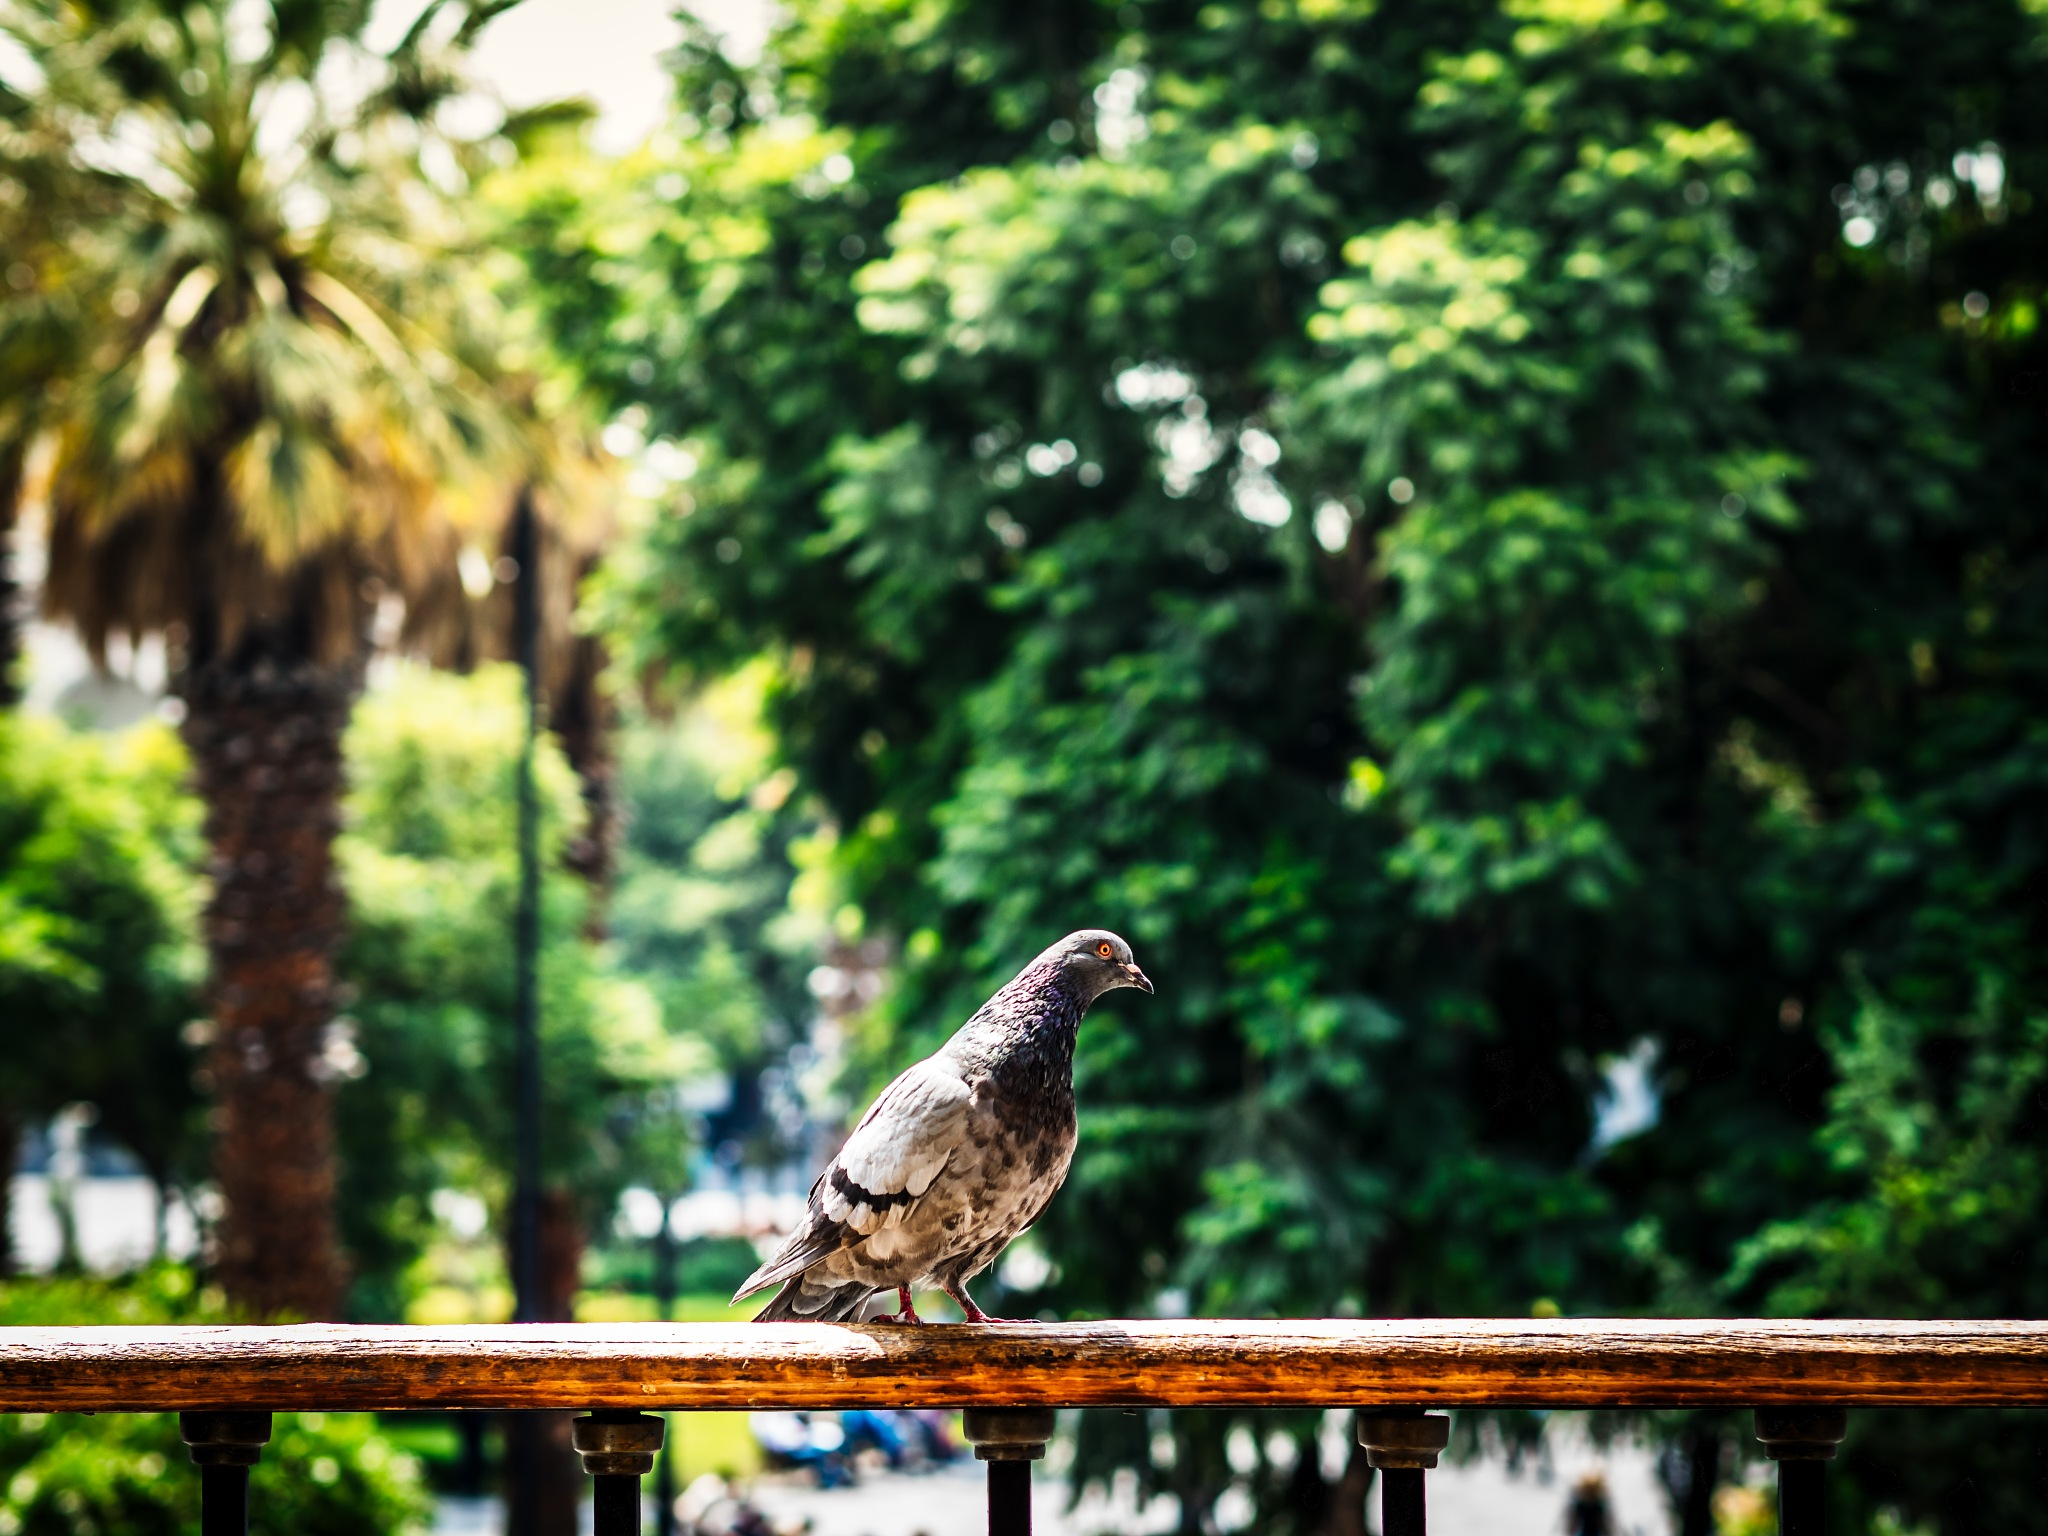 pigeon by Oliver Penack